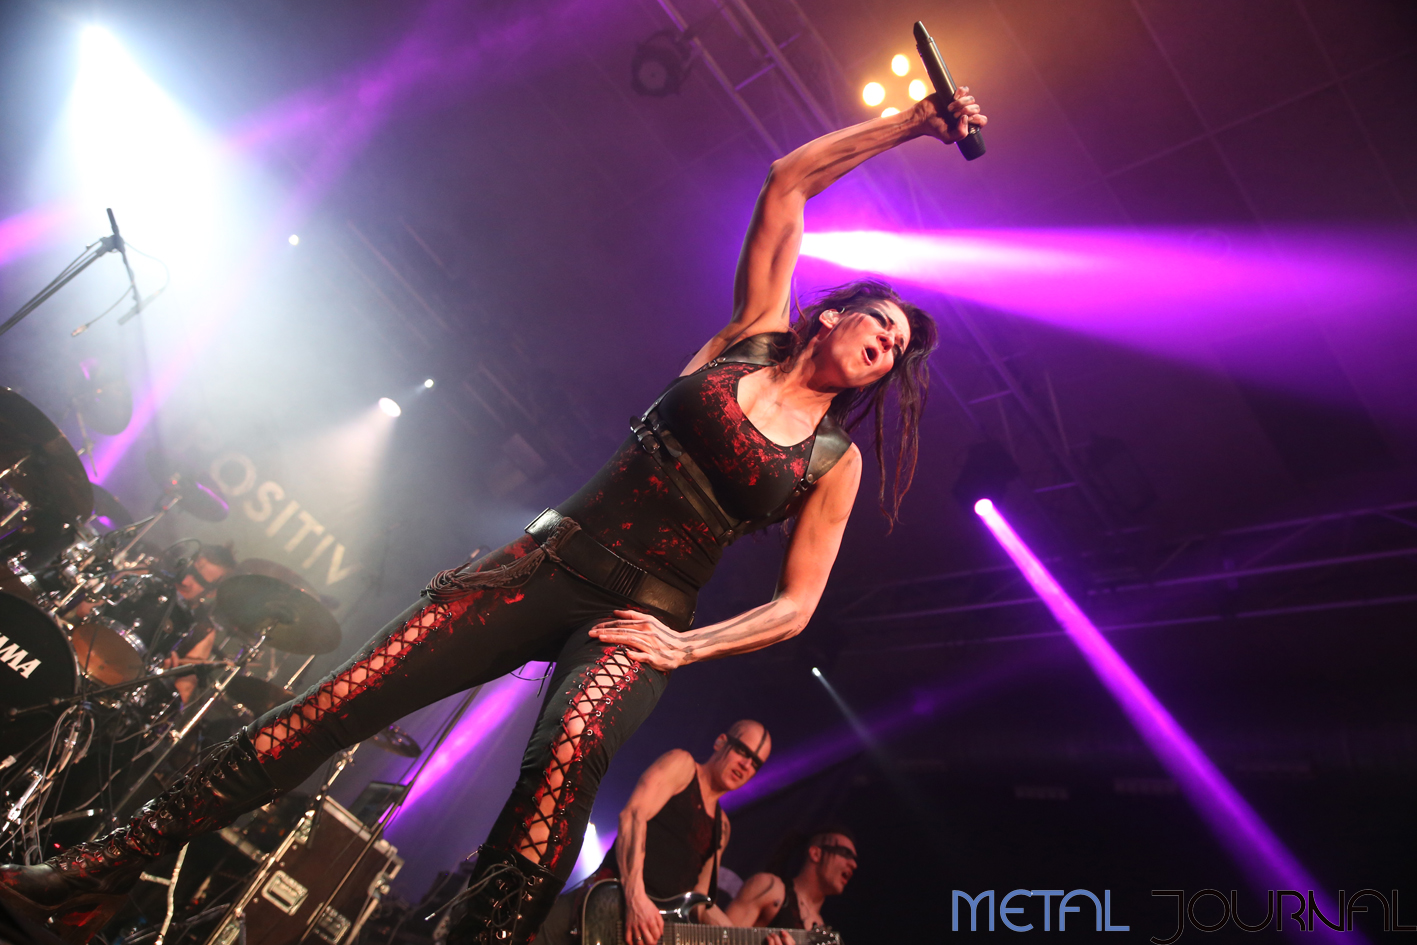 null positiv - metal journal bilbao 2018 pic 18